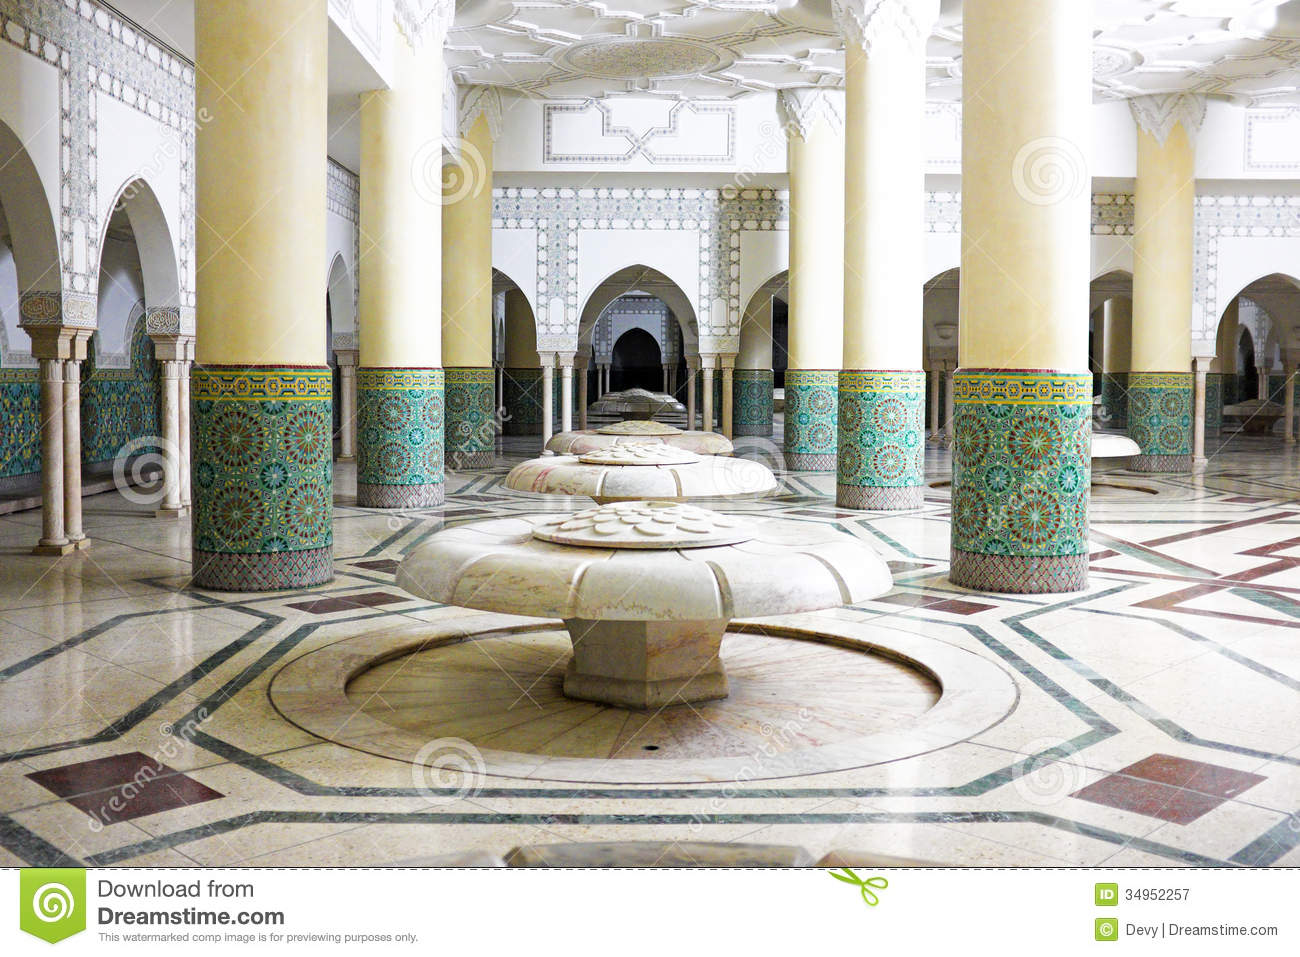 Download Interior Arches And Mosaic Tile Work In Hassan II Mosque In Casablanca, Morocco Stock Image - Image of ceramic, morocco: 34952257